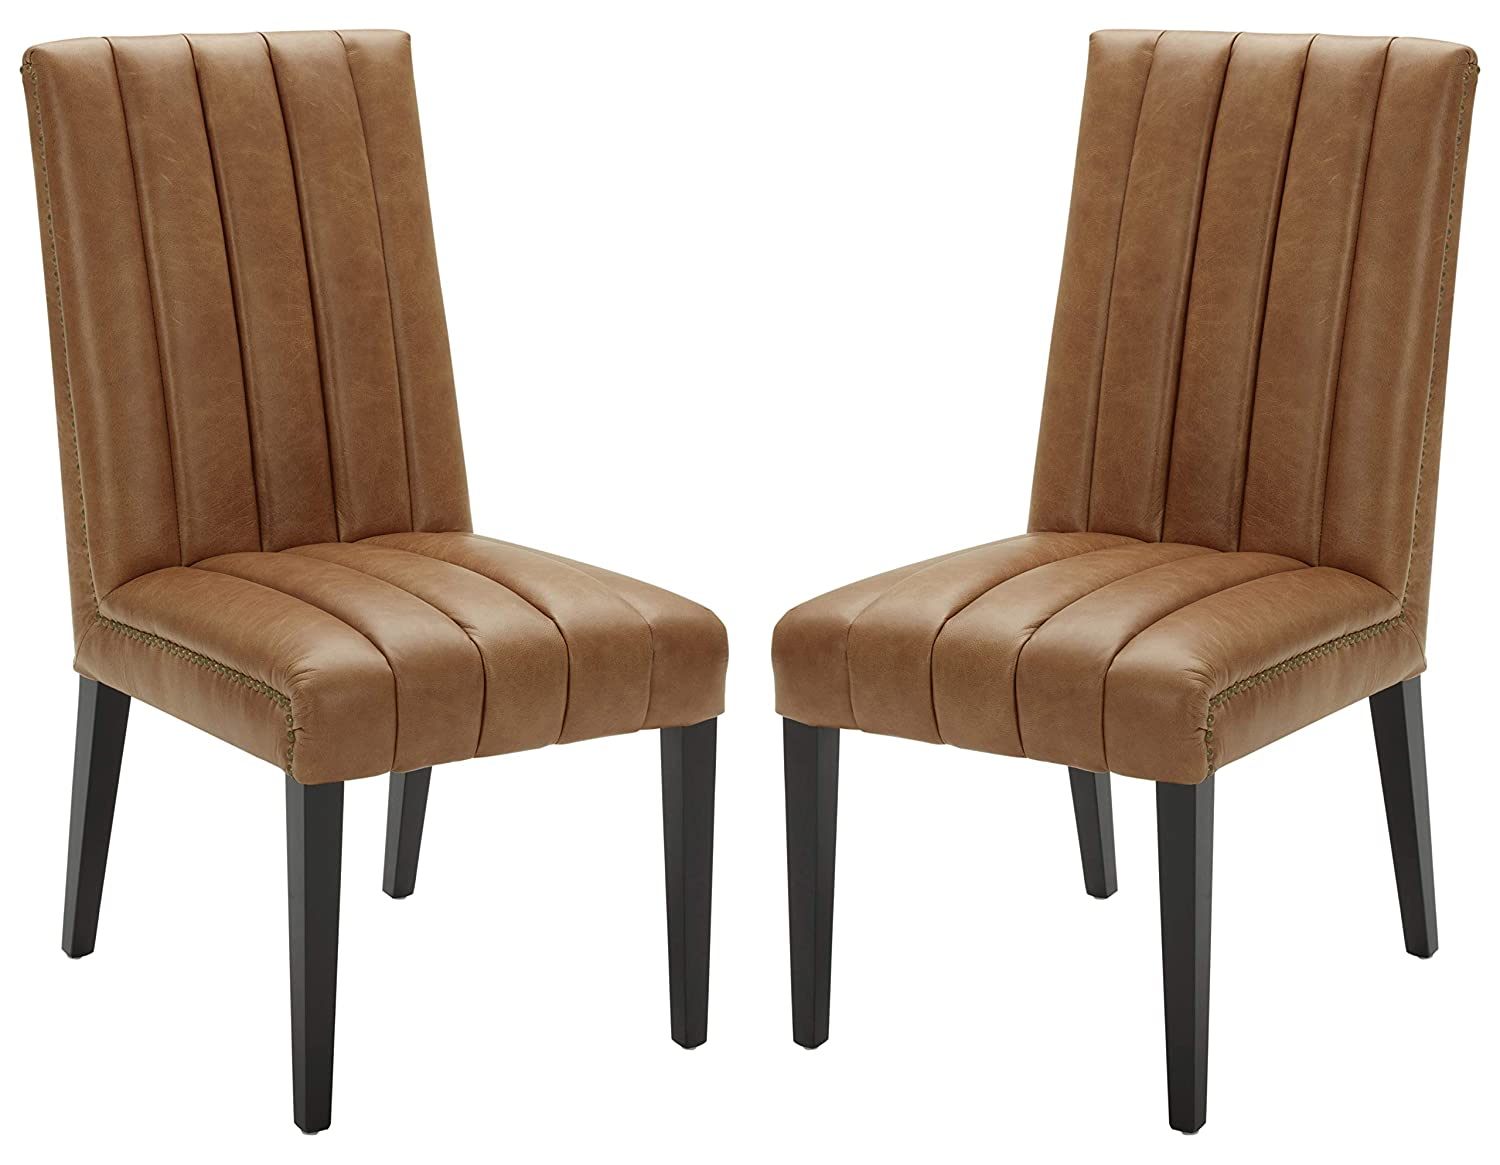 Stone Beam Channel-Back Leather Dining Chairs, 40 H, Cognac, Set of 2